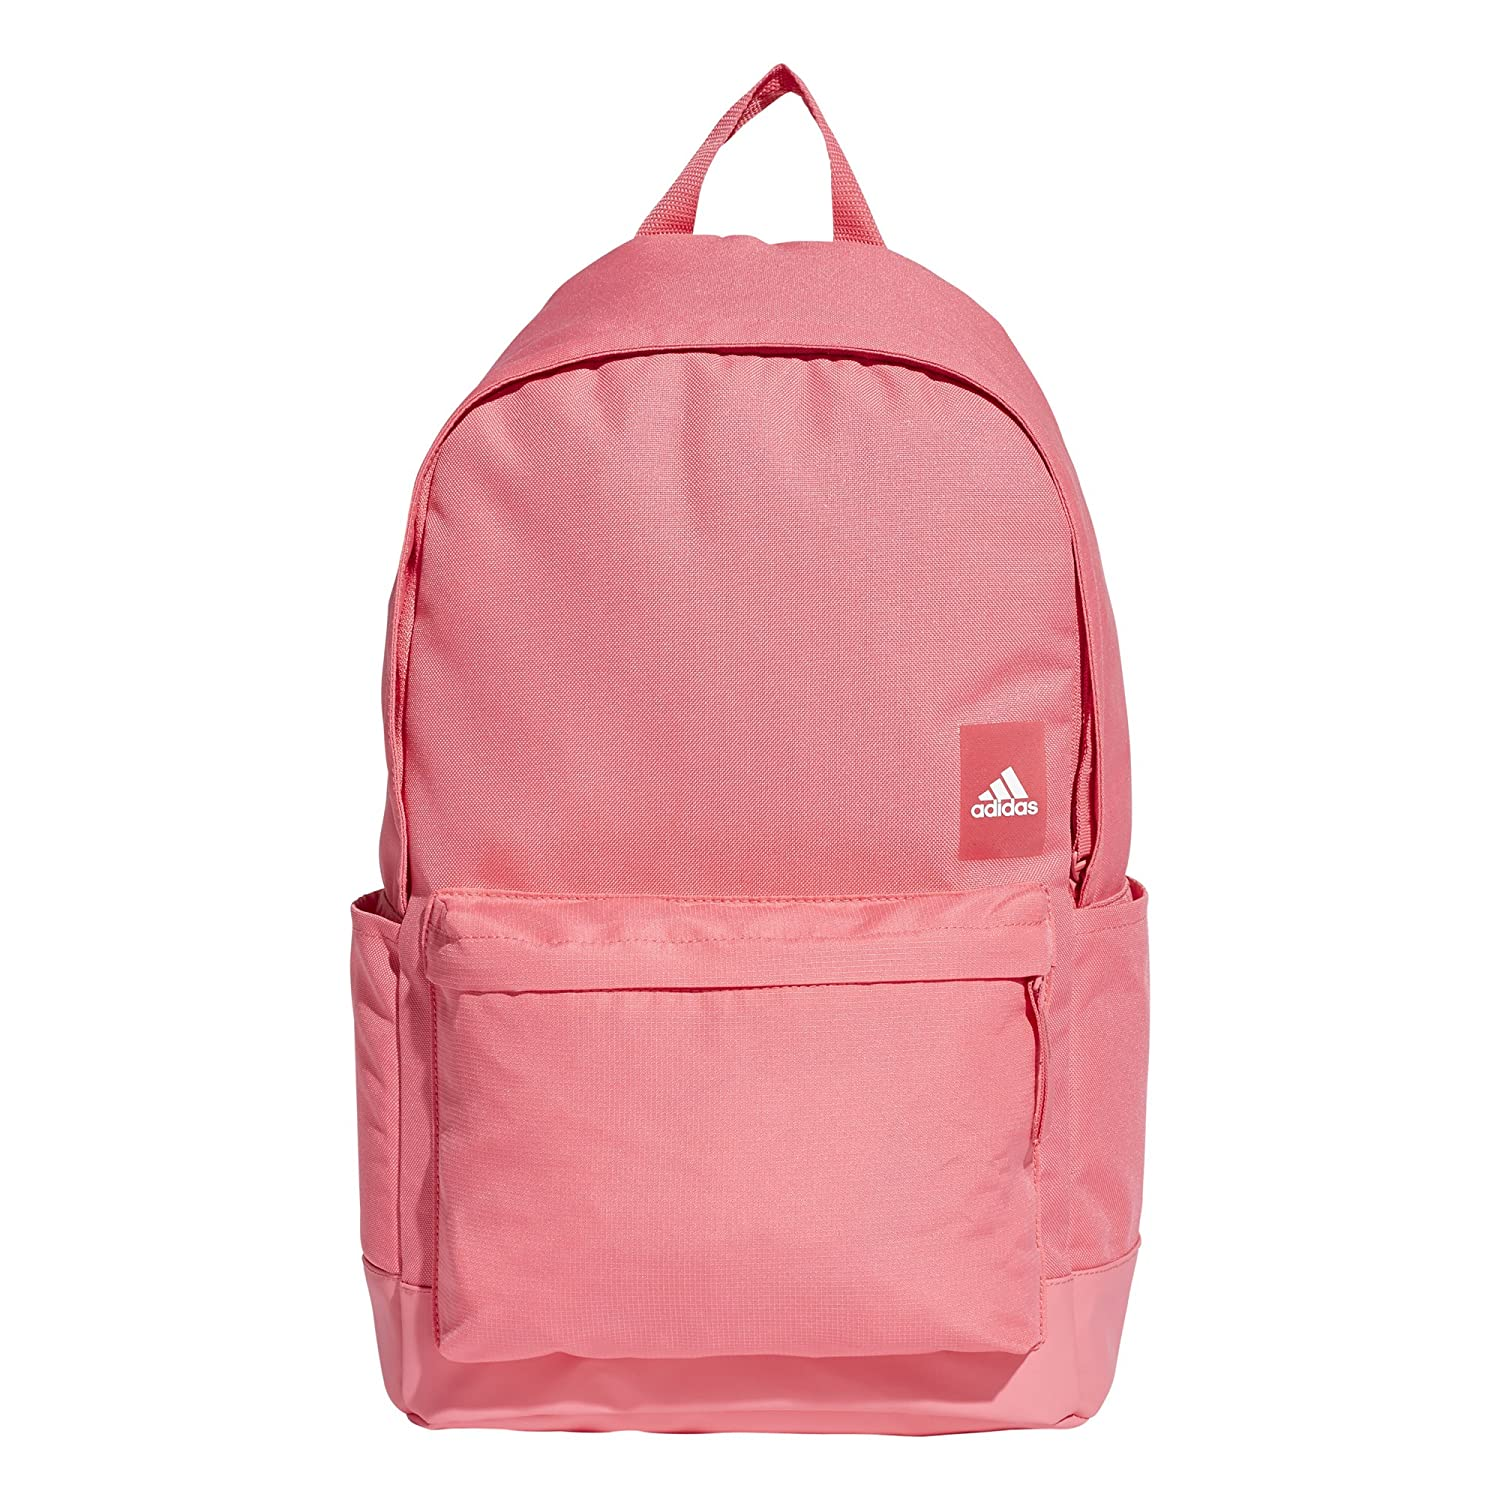 2f9af36a82 adidas Classic Backpack  Amazon.co.uk  Sports   Outdoors